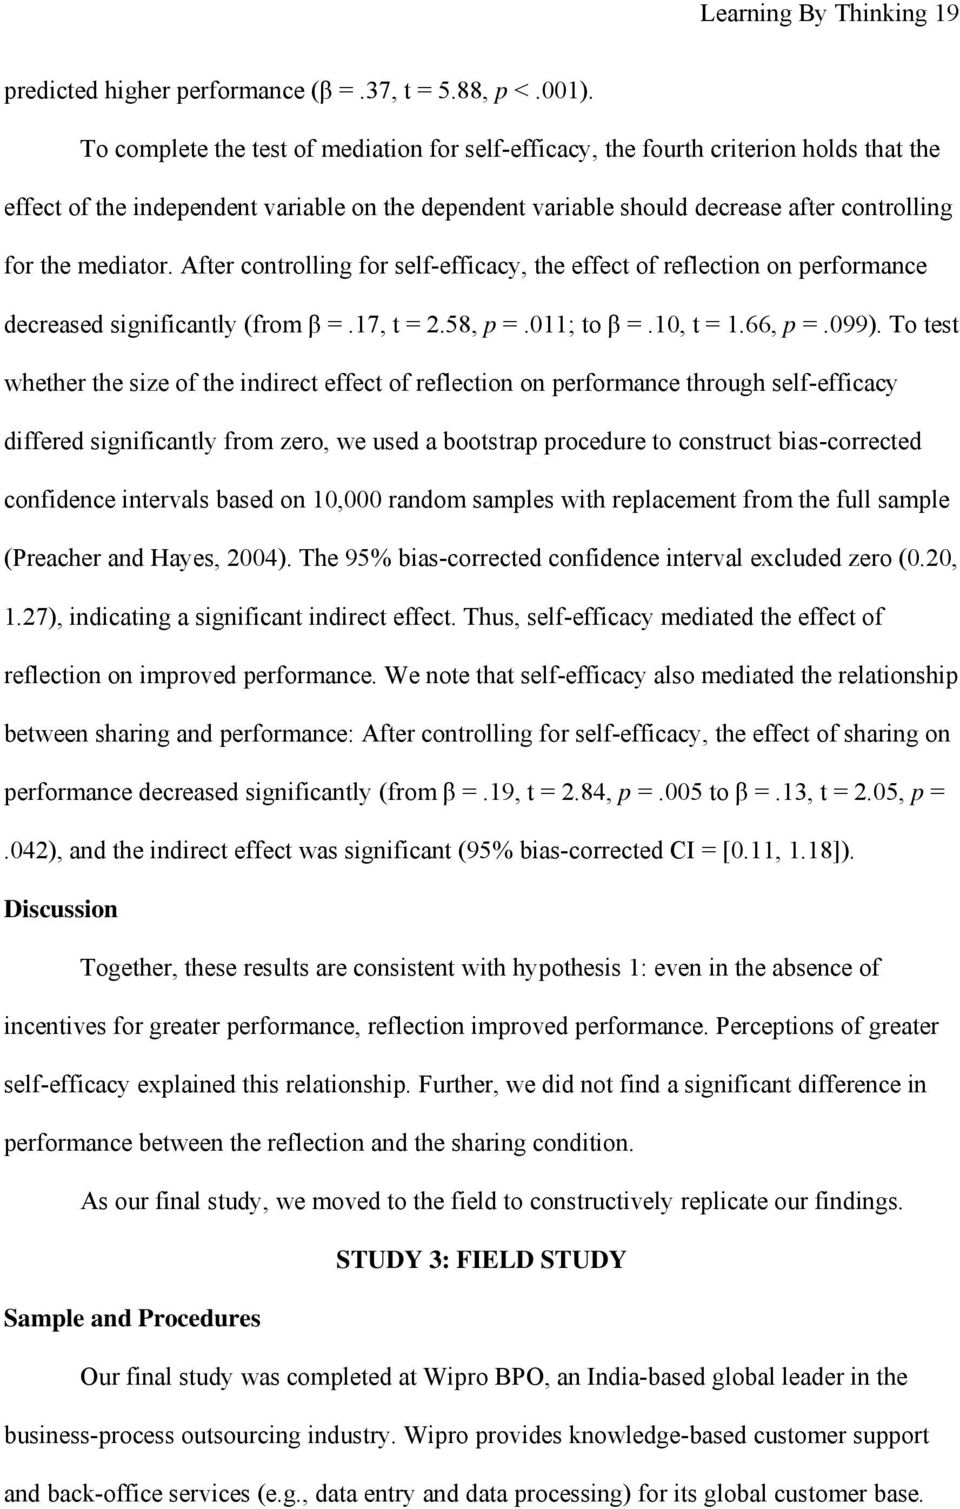 mediator. After controlling for self-efficacy, the effect of reflection on performance decreased significantly (from β =.17, t = 2.58, p =.011; to β =.10, t = 1.66, p =.099).